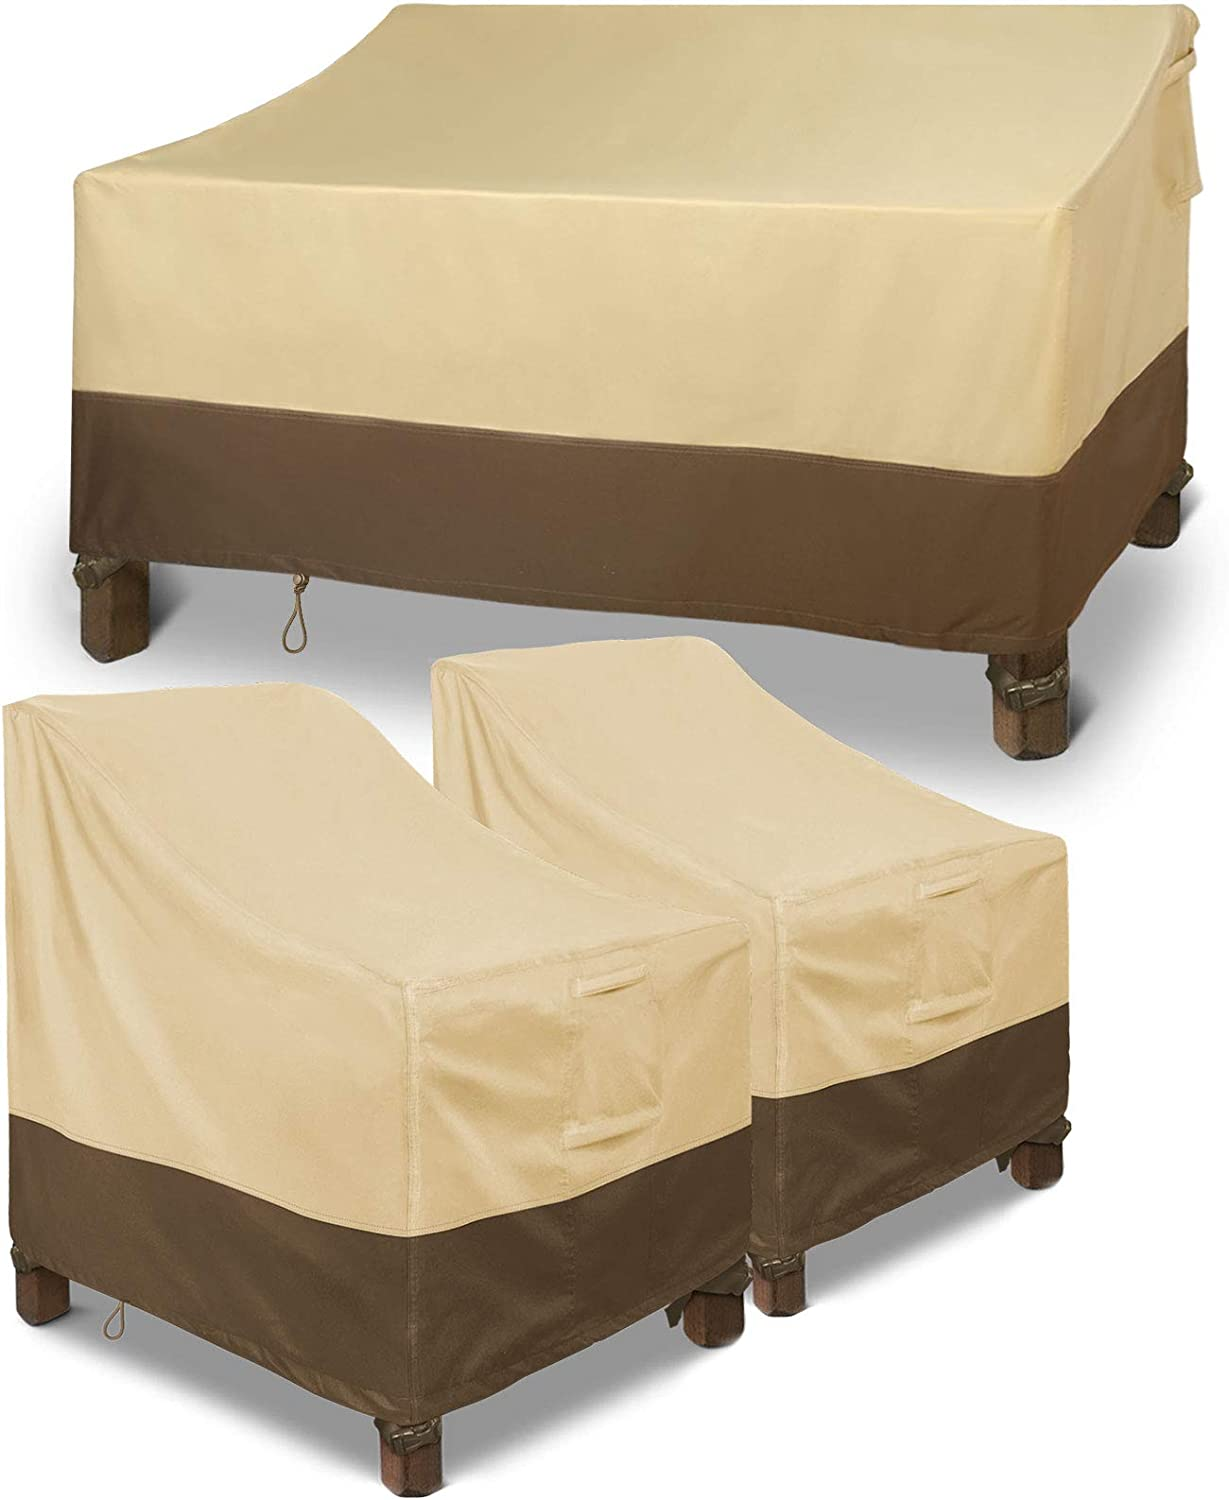 Patio Manufacturer direct delivery Loveseat Cover 58